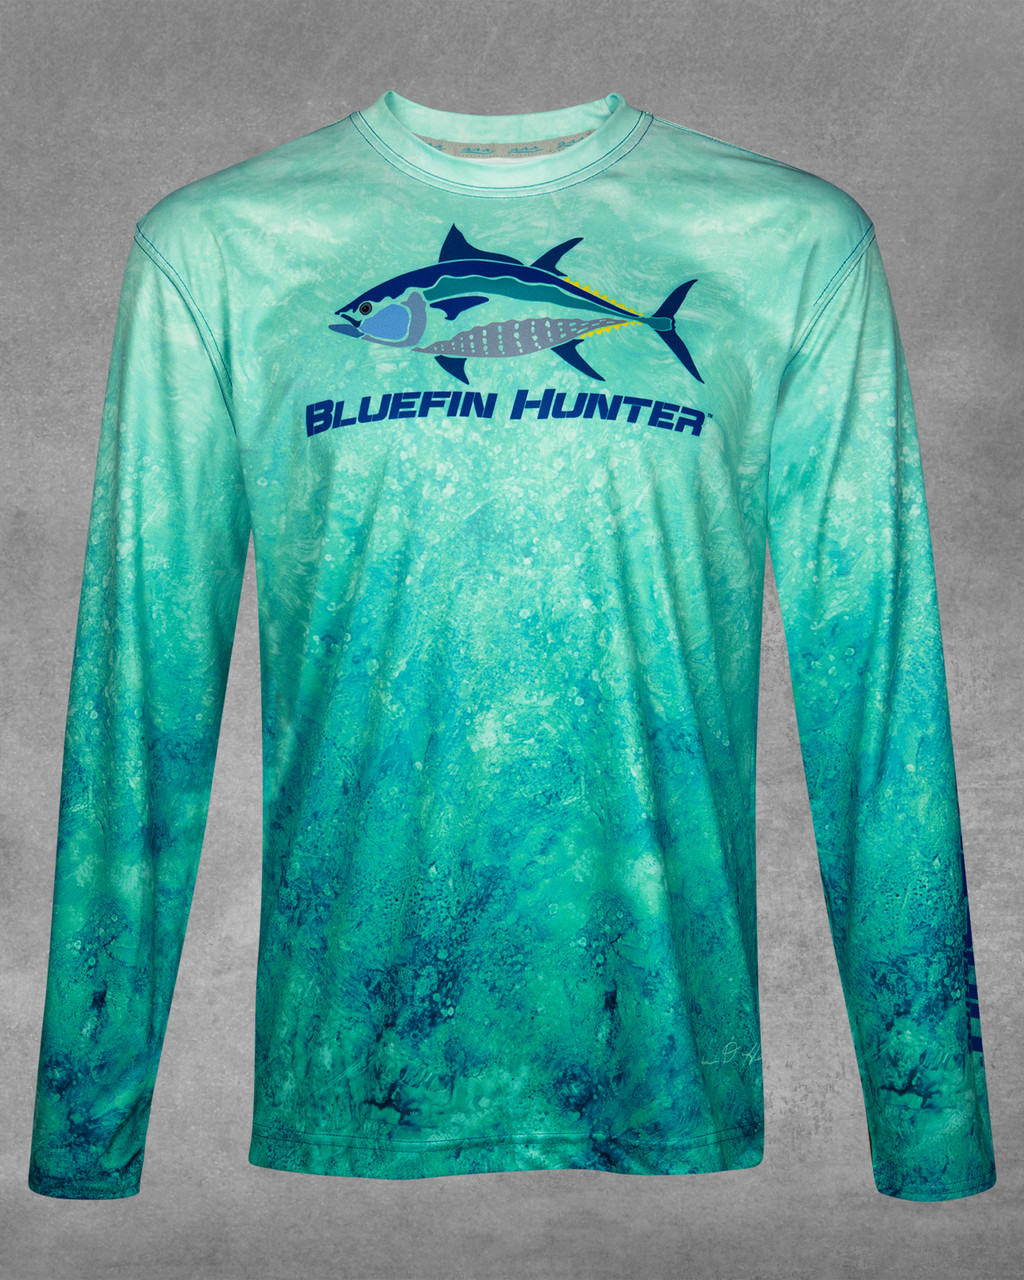 Stores Close To Me Green Marine Bluefin Hunter Upf 50 Long Sleeve Performance Shirt